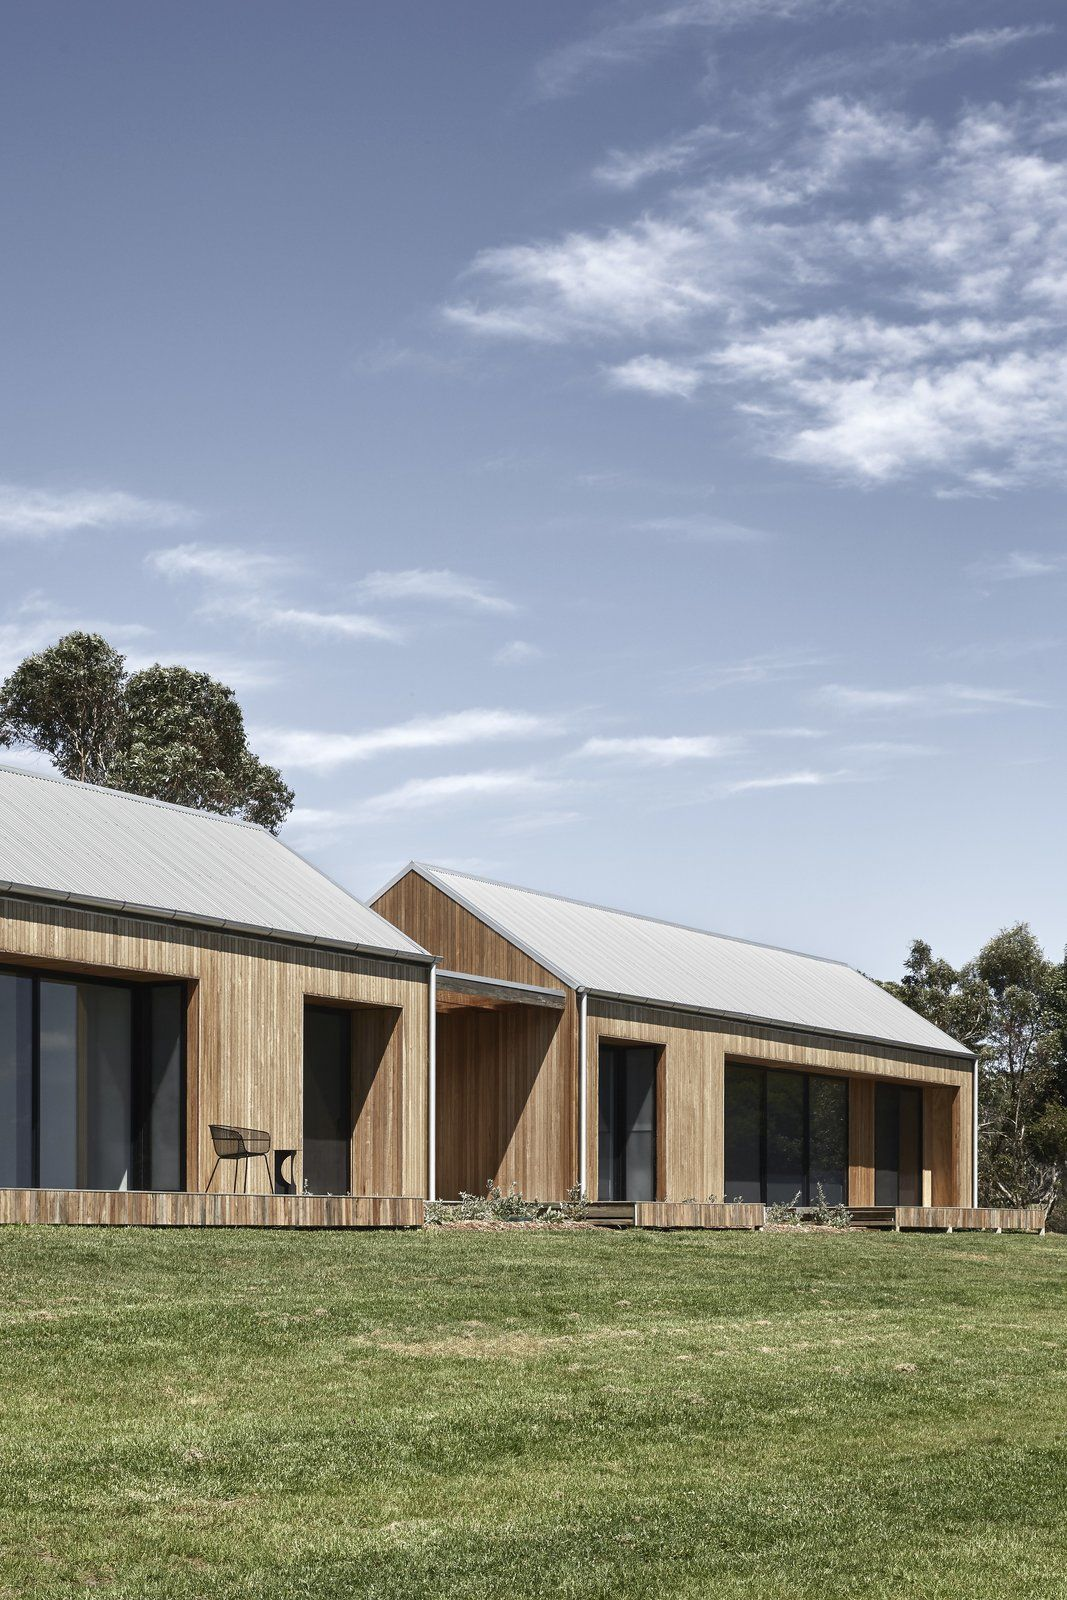 Exterior metal roof material gable roofline wood siding material and house building type the 3767 square foot residence is comprised of two rural style